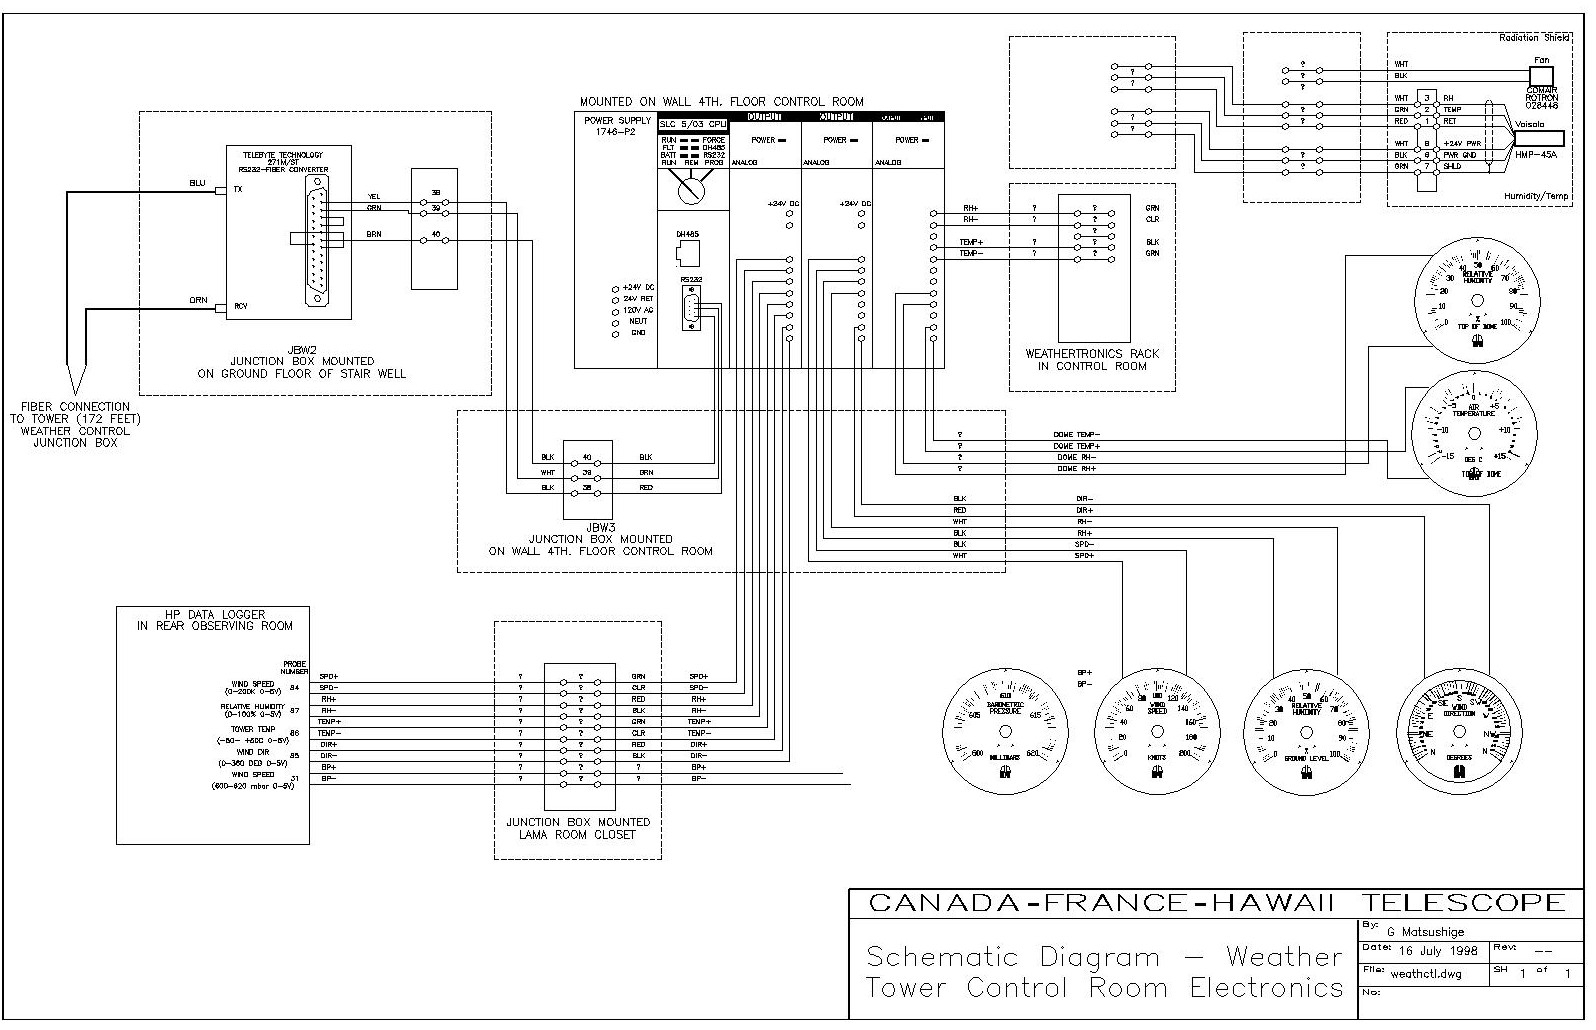 Electrical Schematic Drawings Get Free Image About Wiring Diagram Allen Bradley 855t Bcb